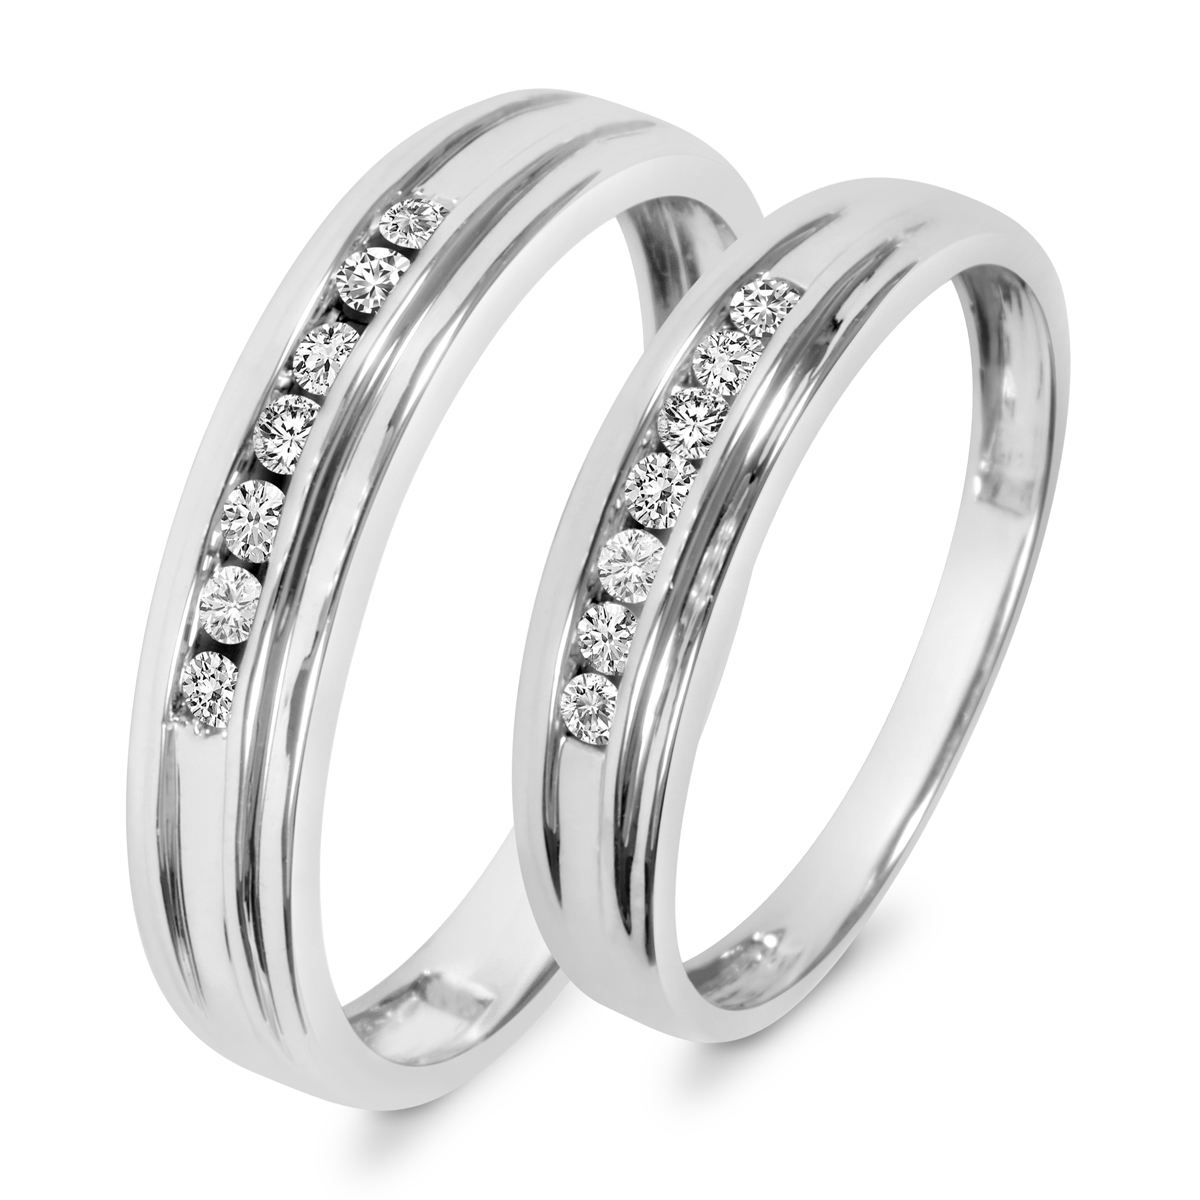 1 3 CT T W Diamond His And Hers Wedding Band Set 10K White Gold